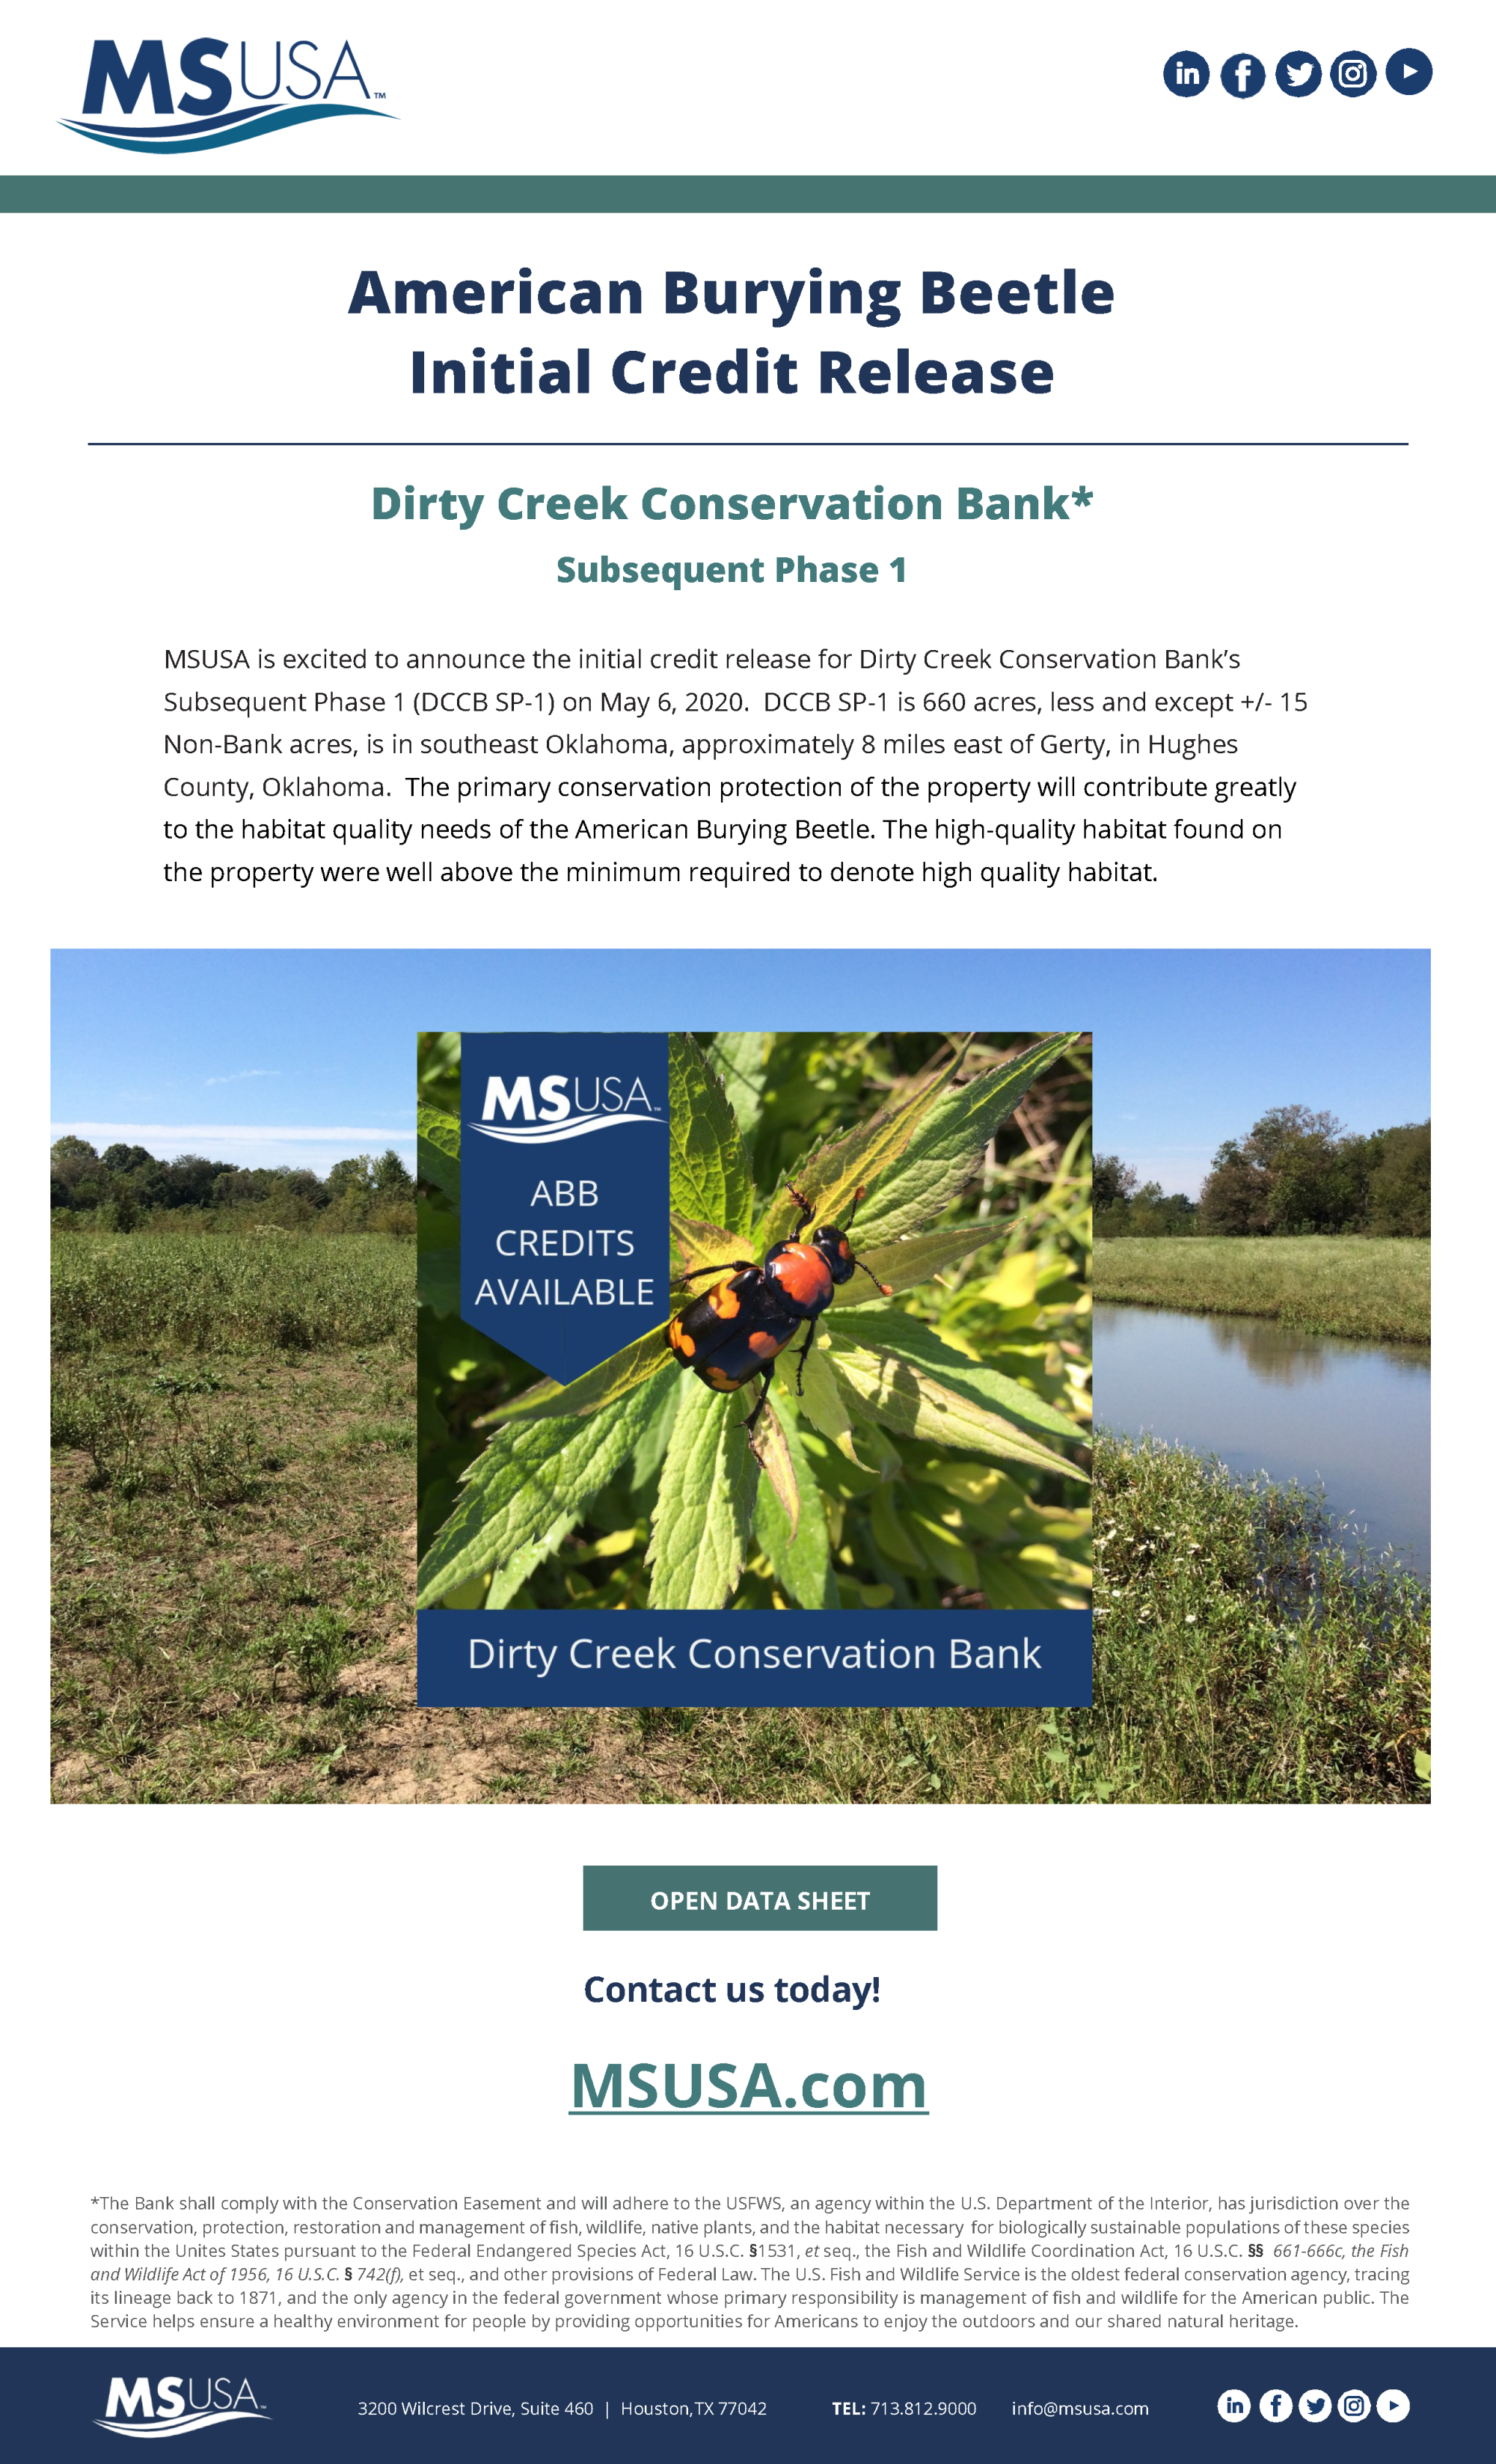 Initial Credit Release Announcement – Dirty Creek Conservation Bank SP-1, located in Hughes County, Oklahoma, has received its initial credit release on May 6, 2020.